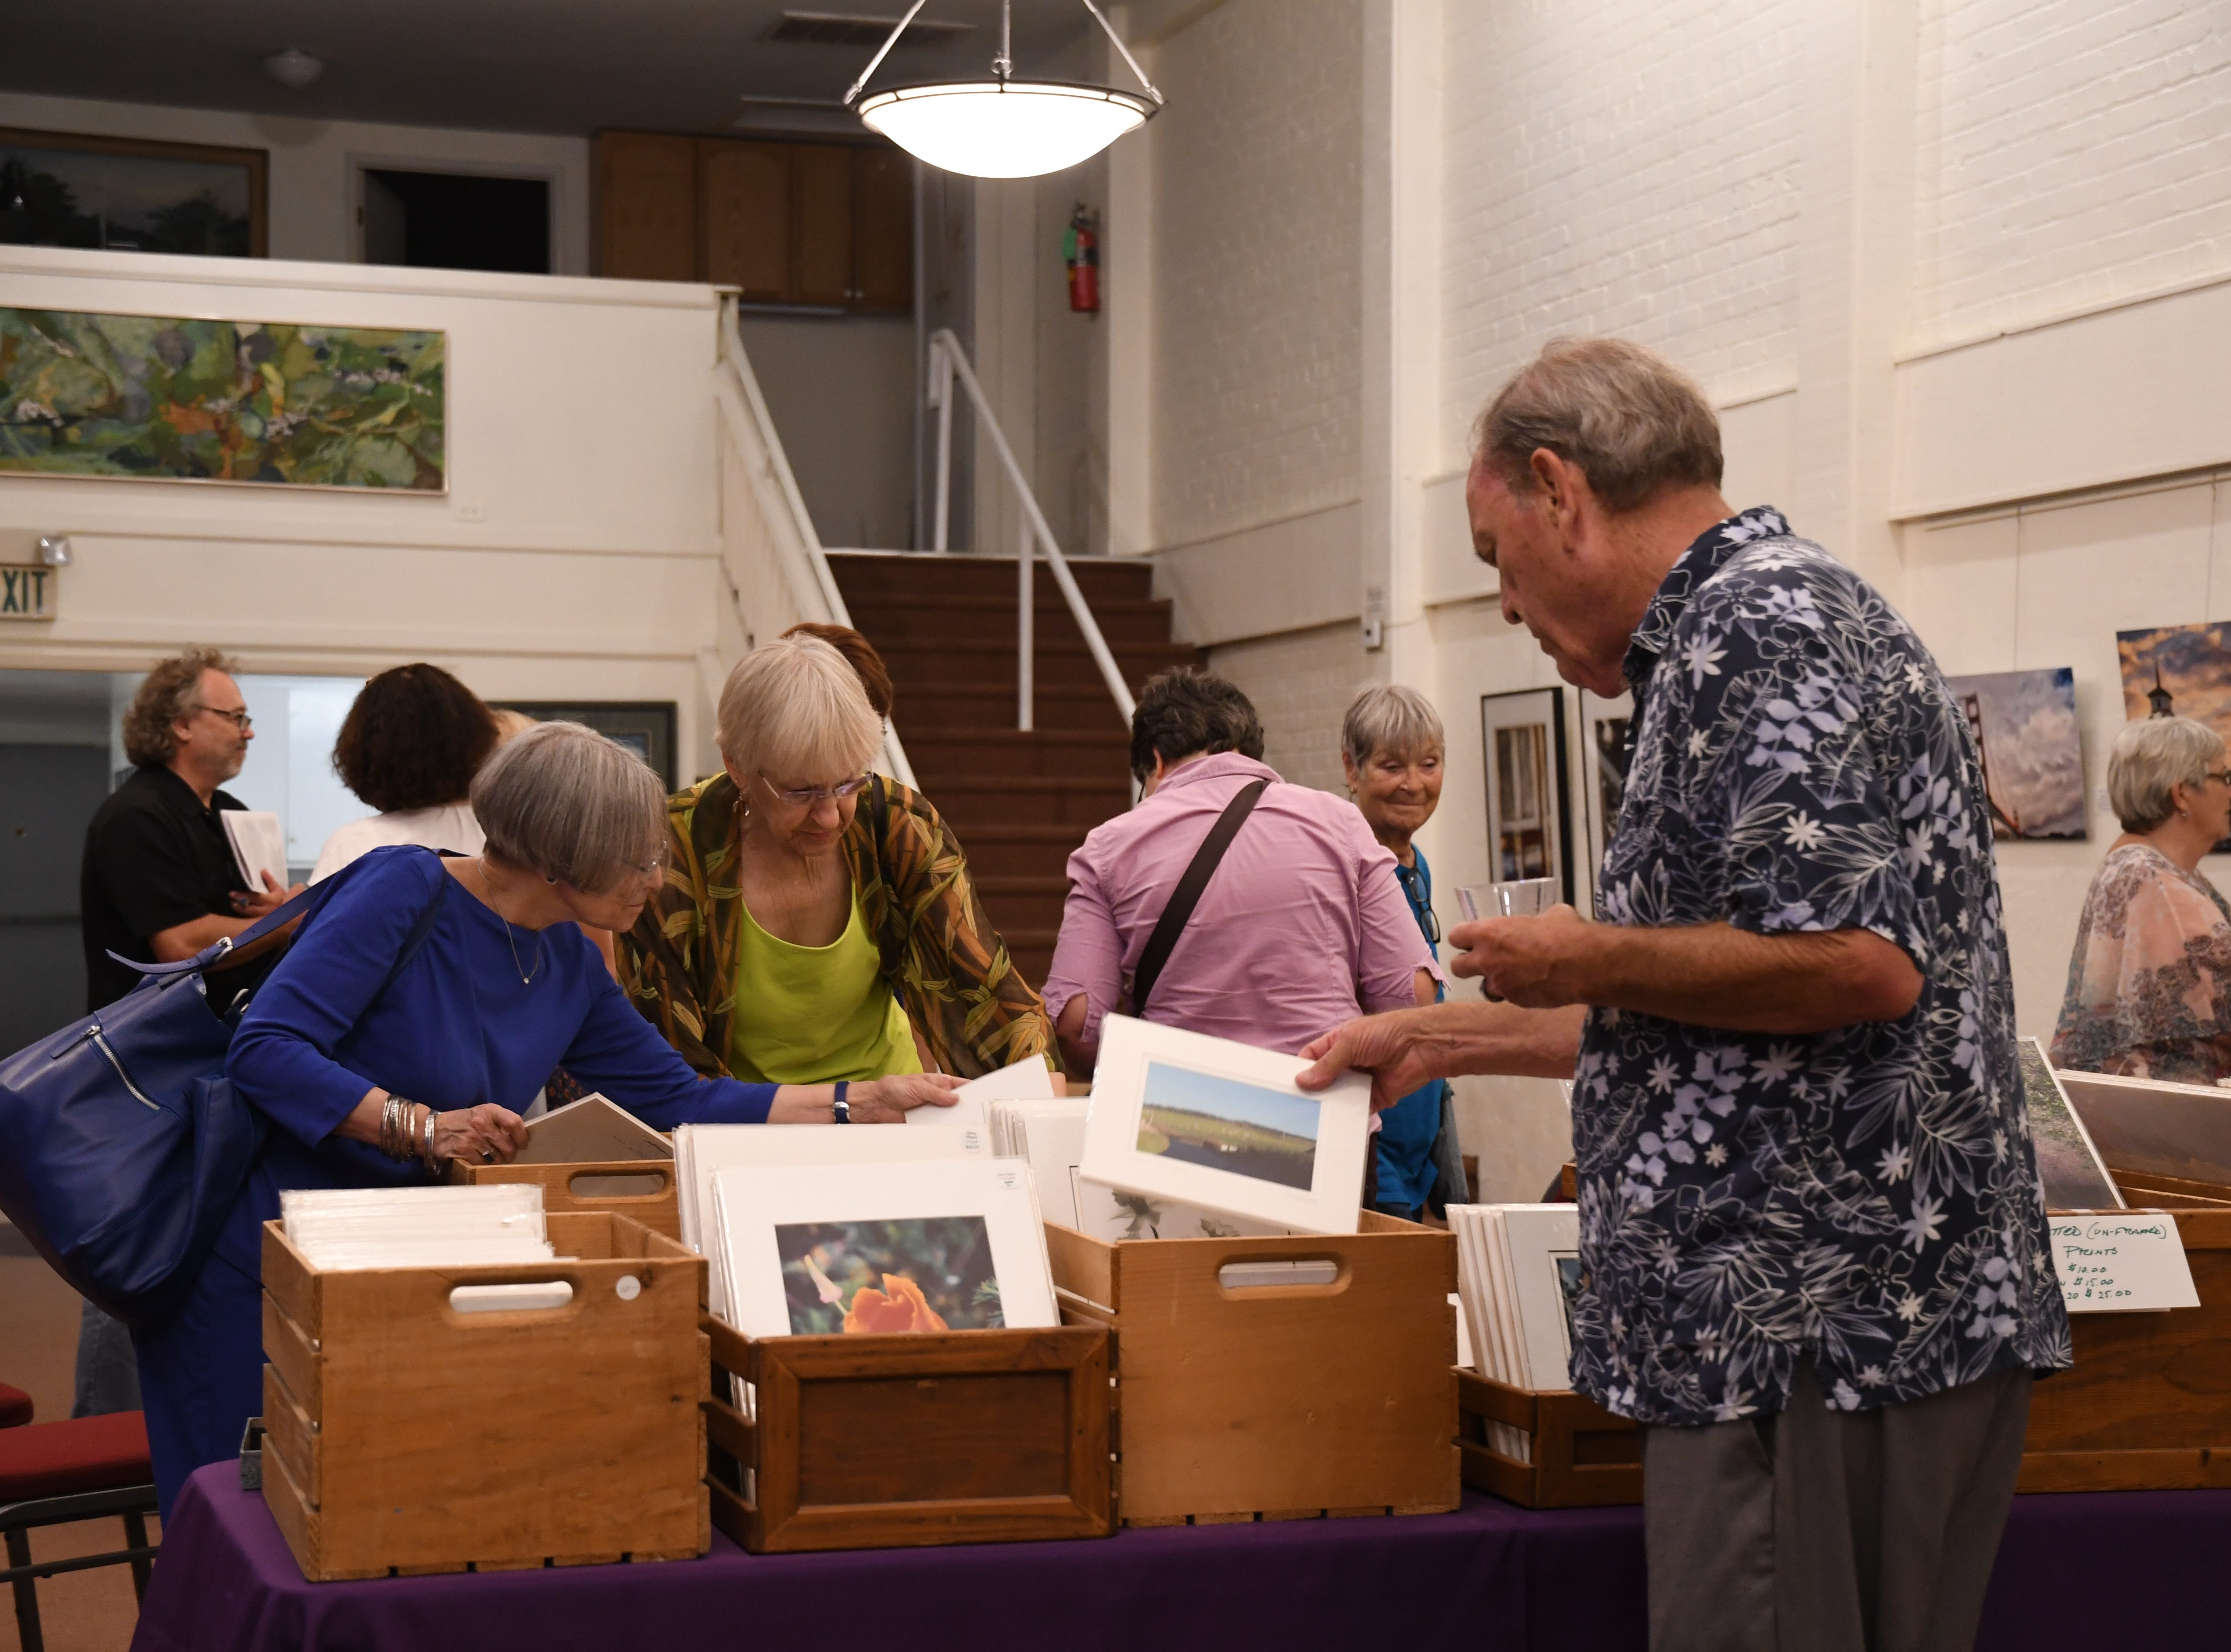 Photographer Ginny Wilson selling her collection of matted photos at Brandon Mitchell Gallery